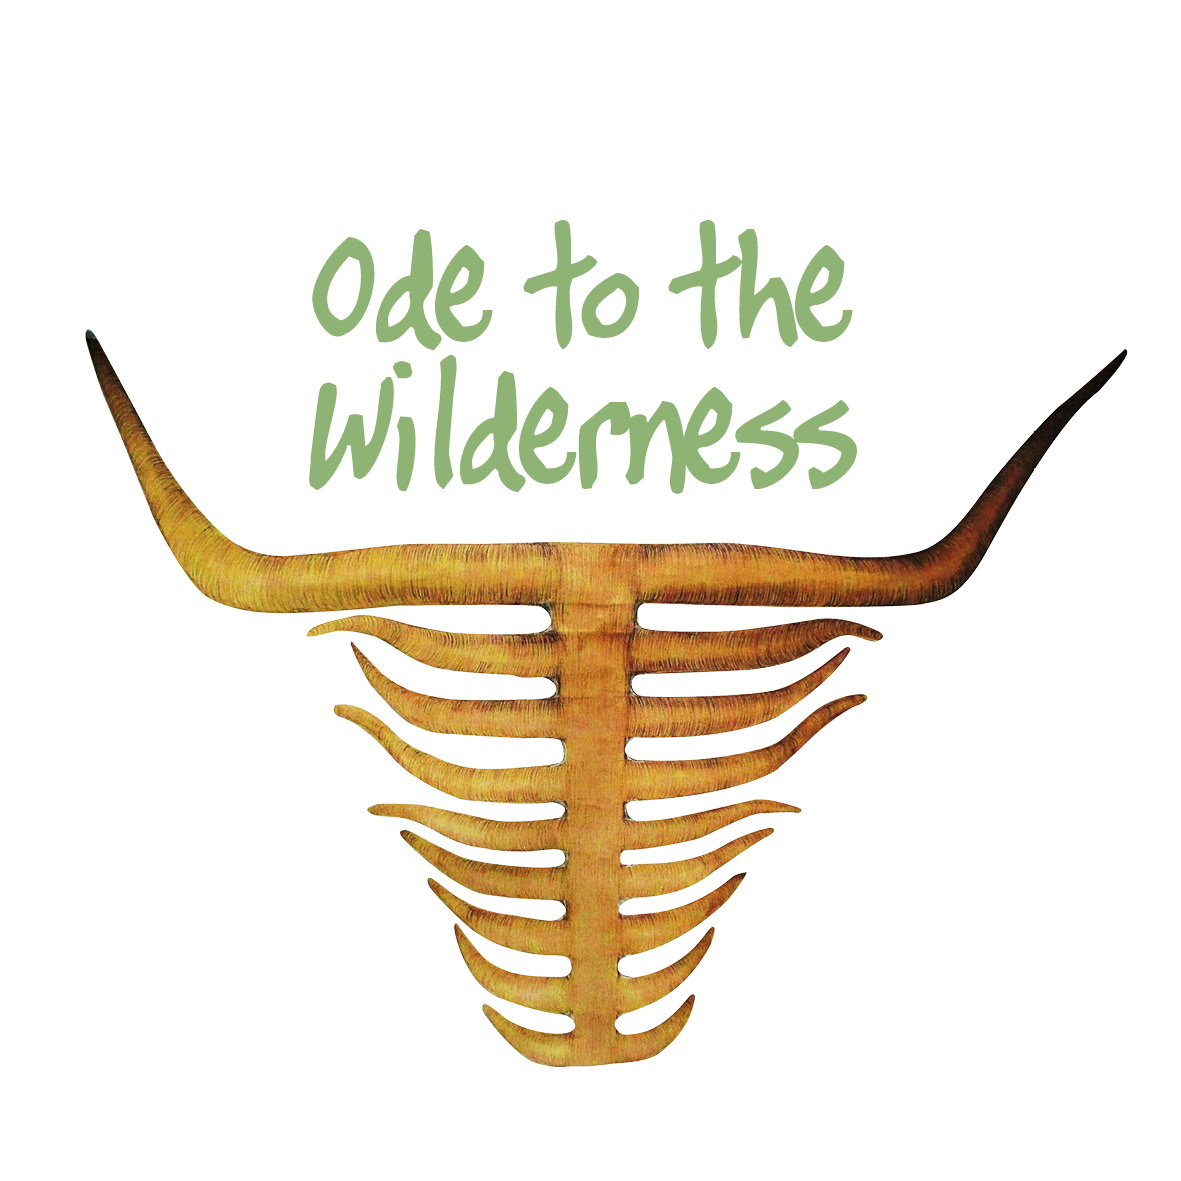 Ode to the Wilderness